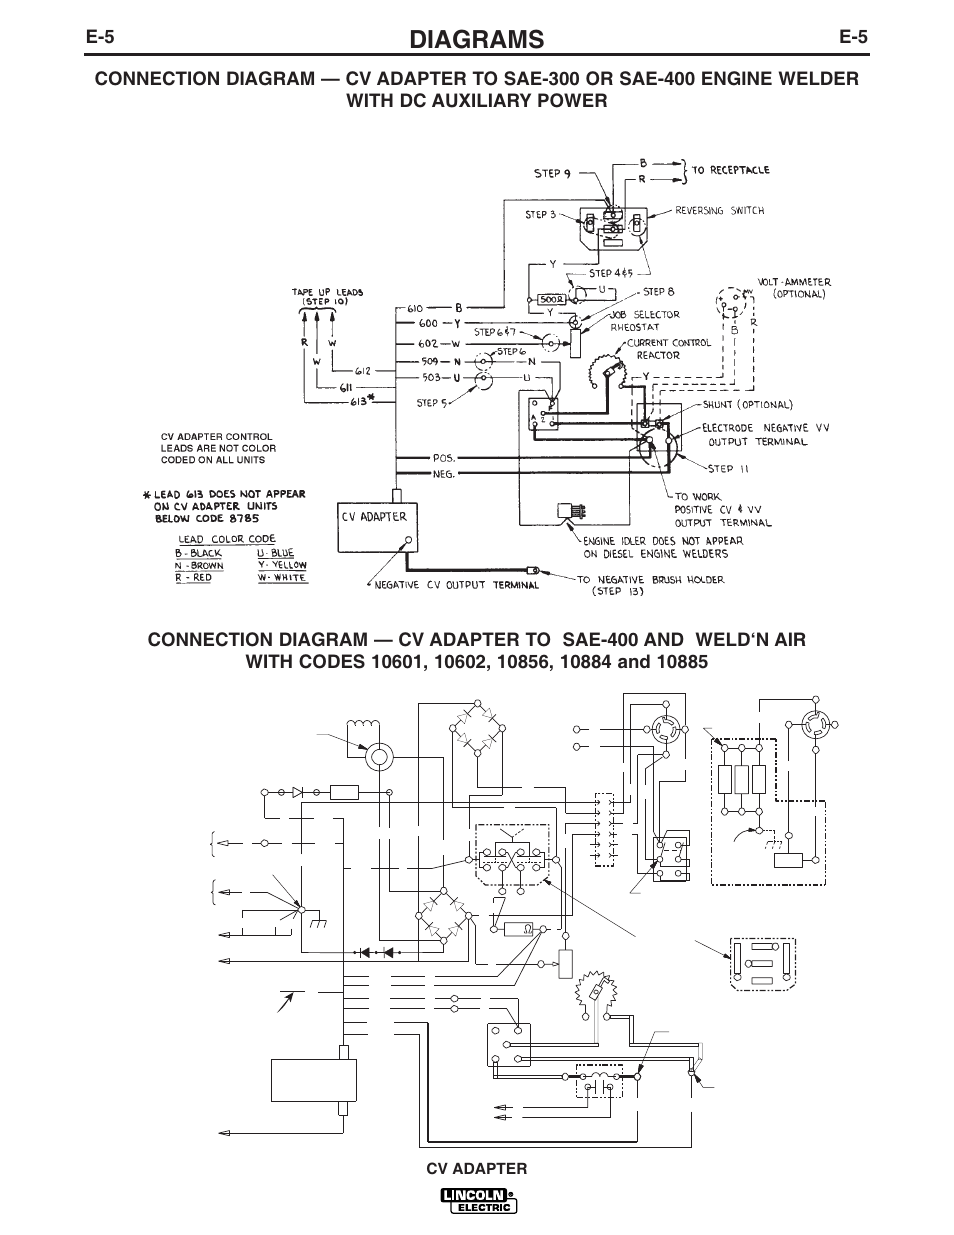 lincoln electric cv adapter im309 d page34 diagrams, cv adapter lincoln electric cv adapter im309 d user lincoln sae 400 wiring diagram at creativeand.co